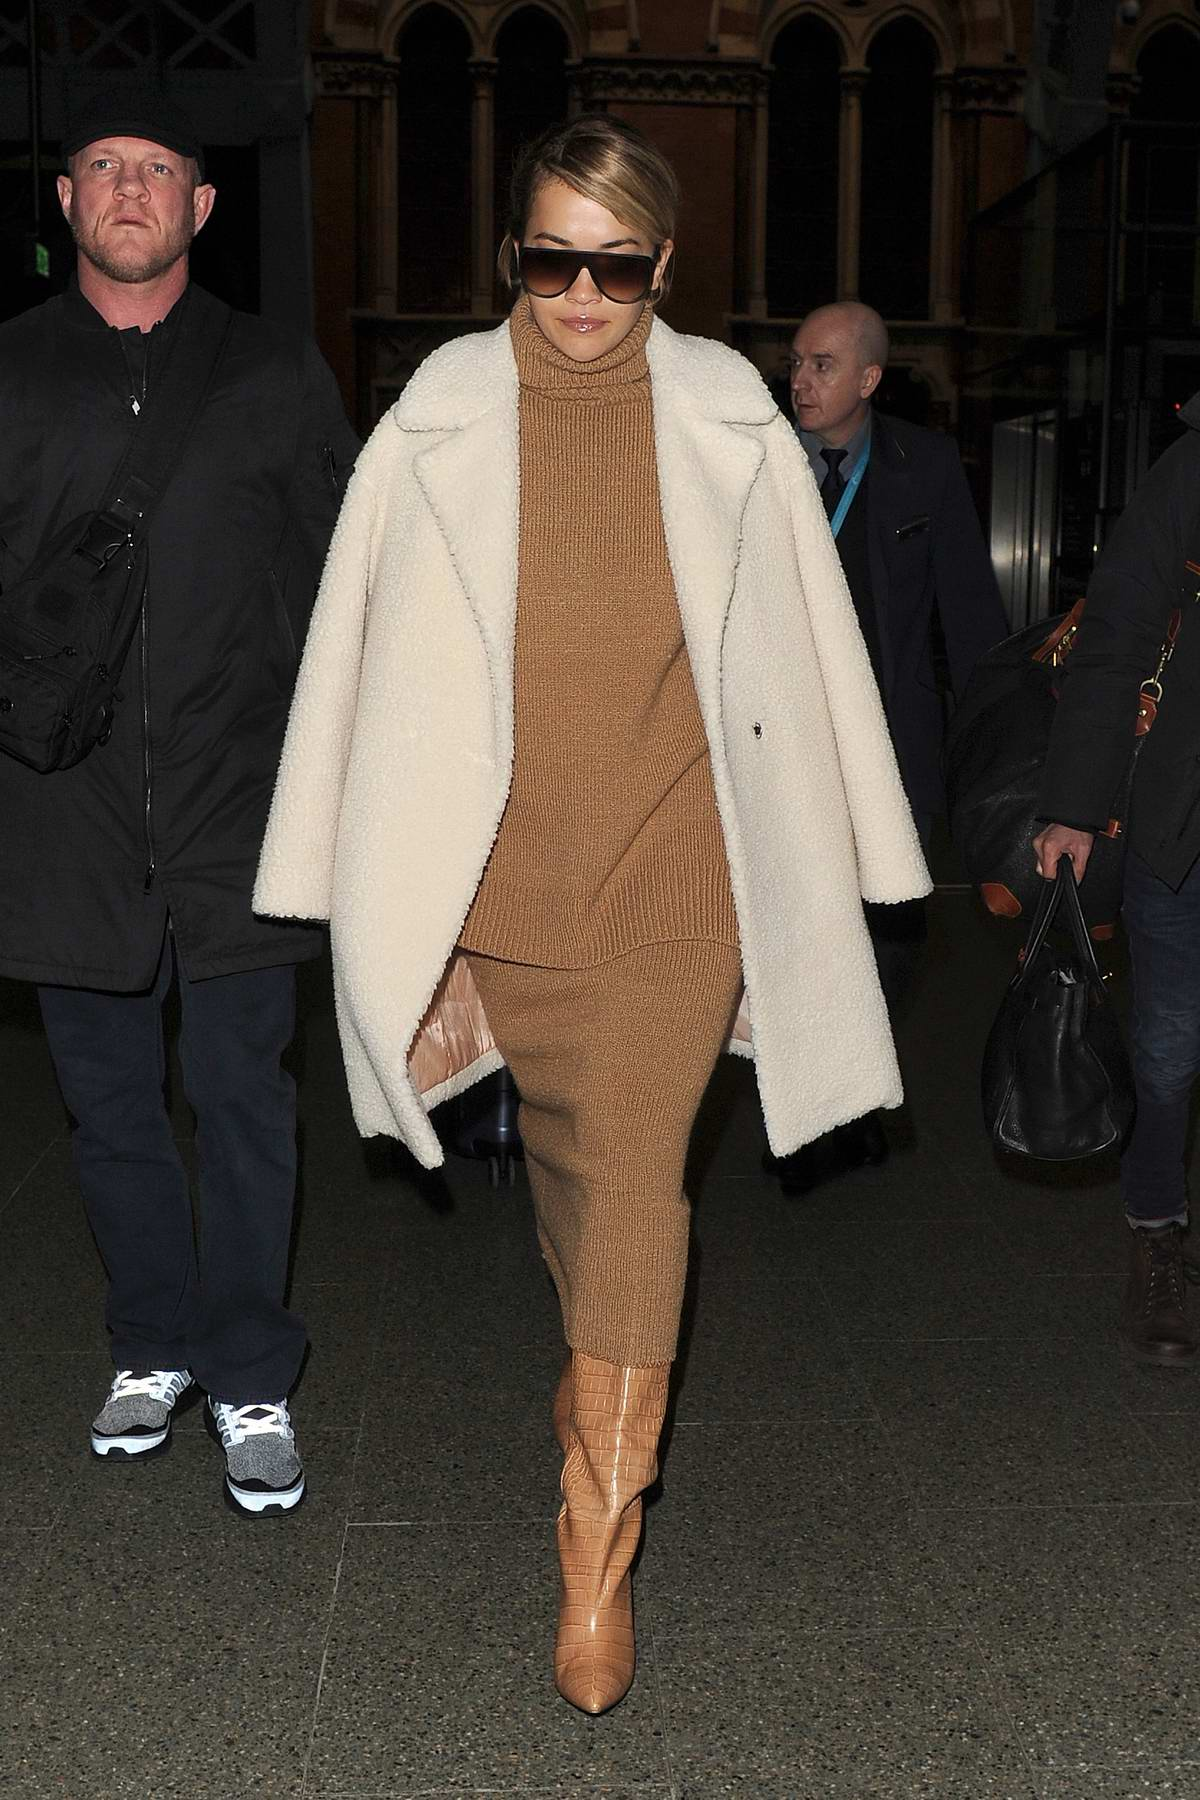 Rita Ora looks chic in a tan colored dress with a cream coat as she arrives at Kings Cross on a Eurostar train from Paris in London, UK